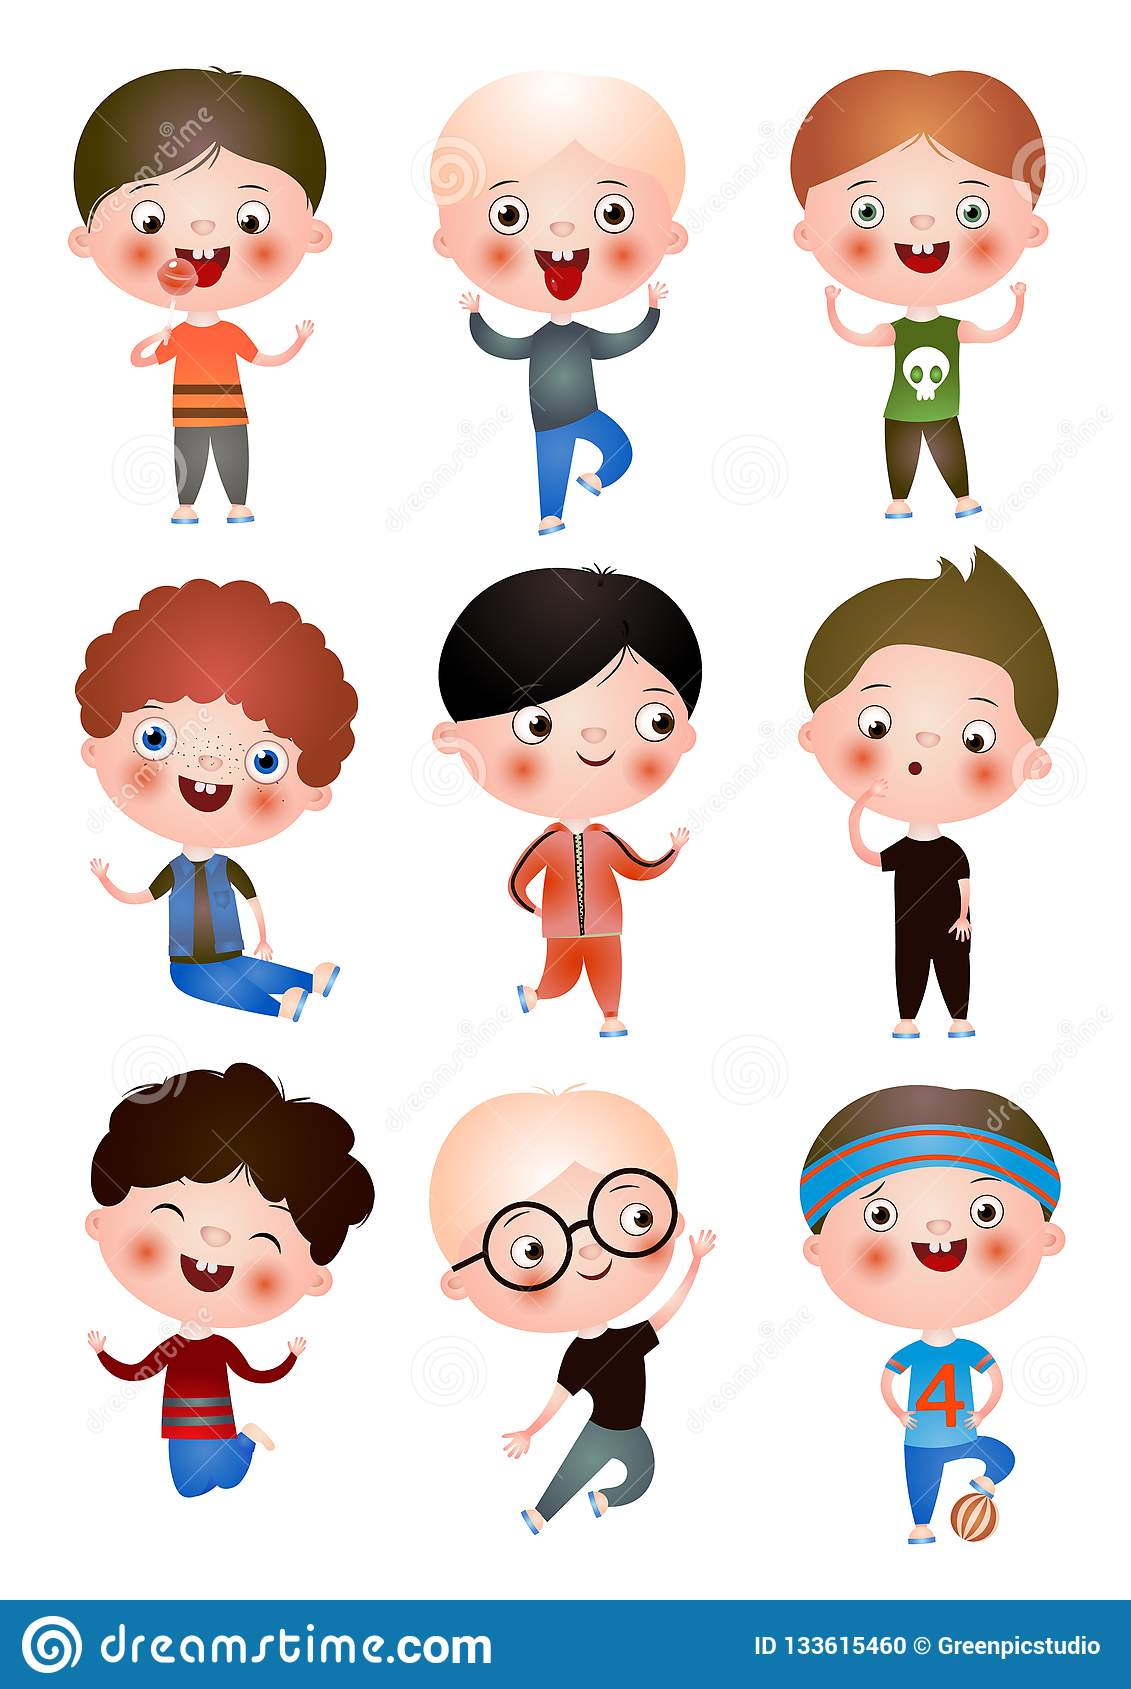 Funny Funny Kids With Different Hairstyles And Hair Color Children Spend Their Free Time Having Fun And Playing Stock Illustration Illustration Of Group Funny 133615460